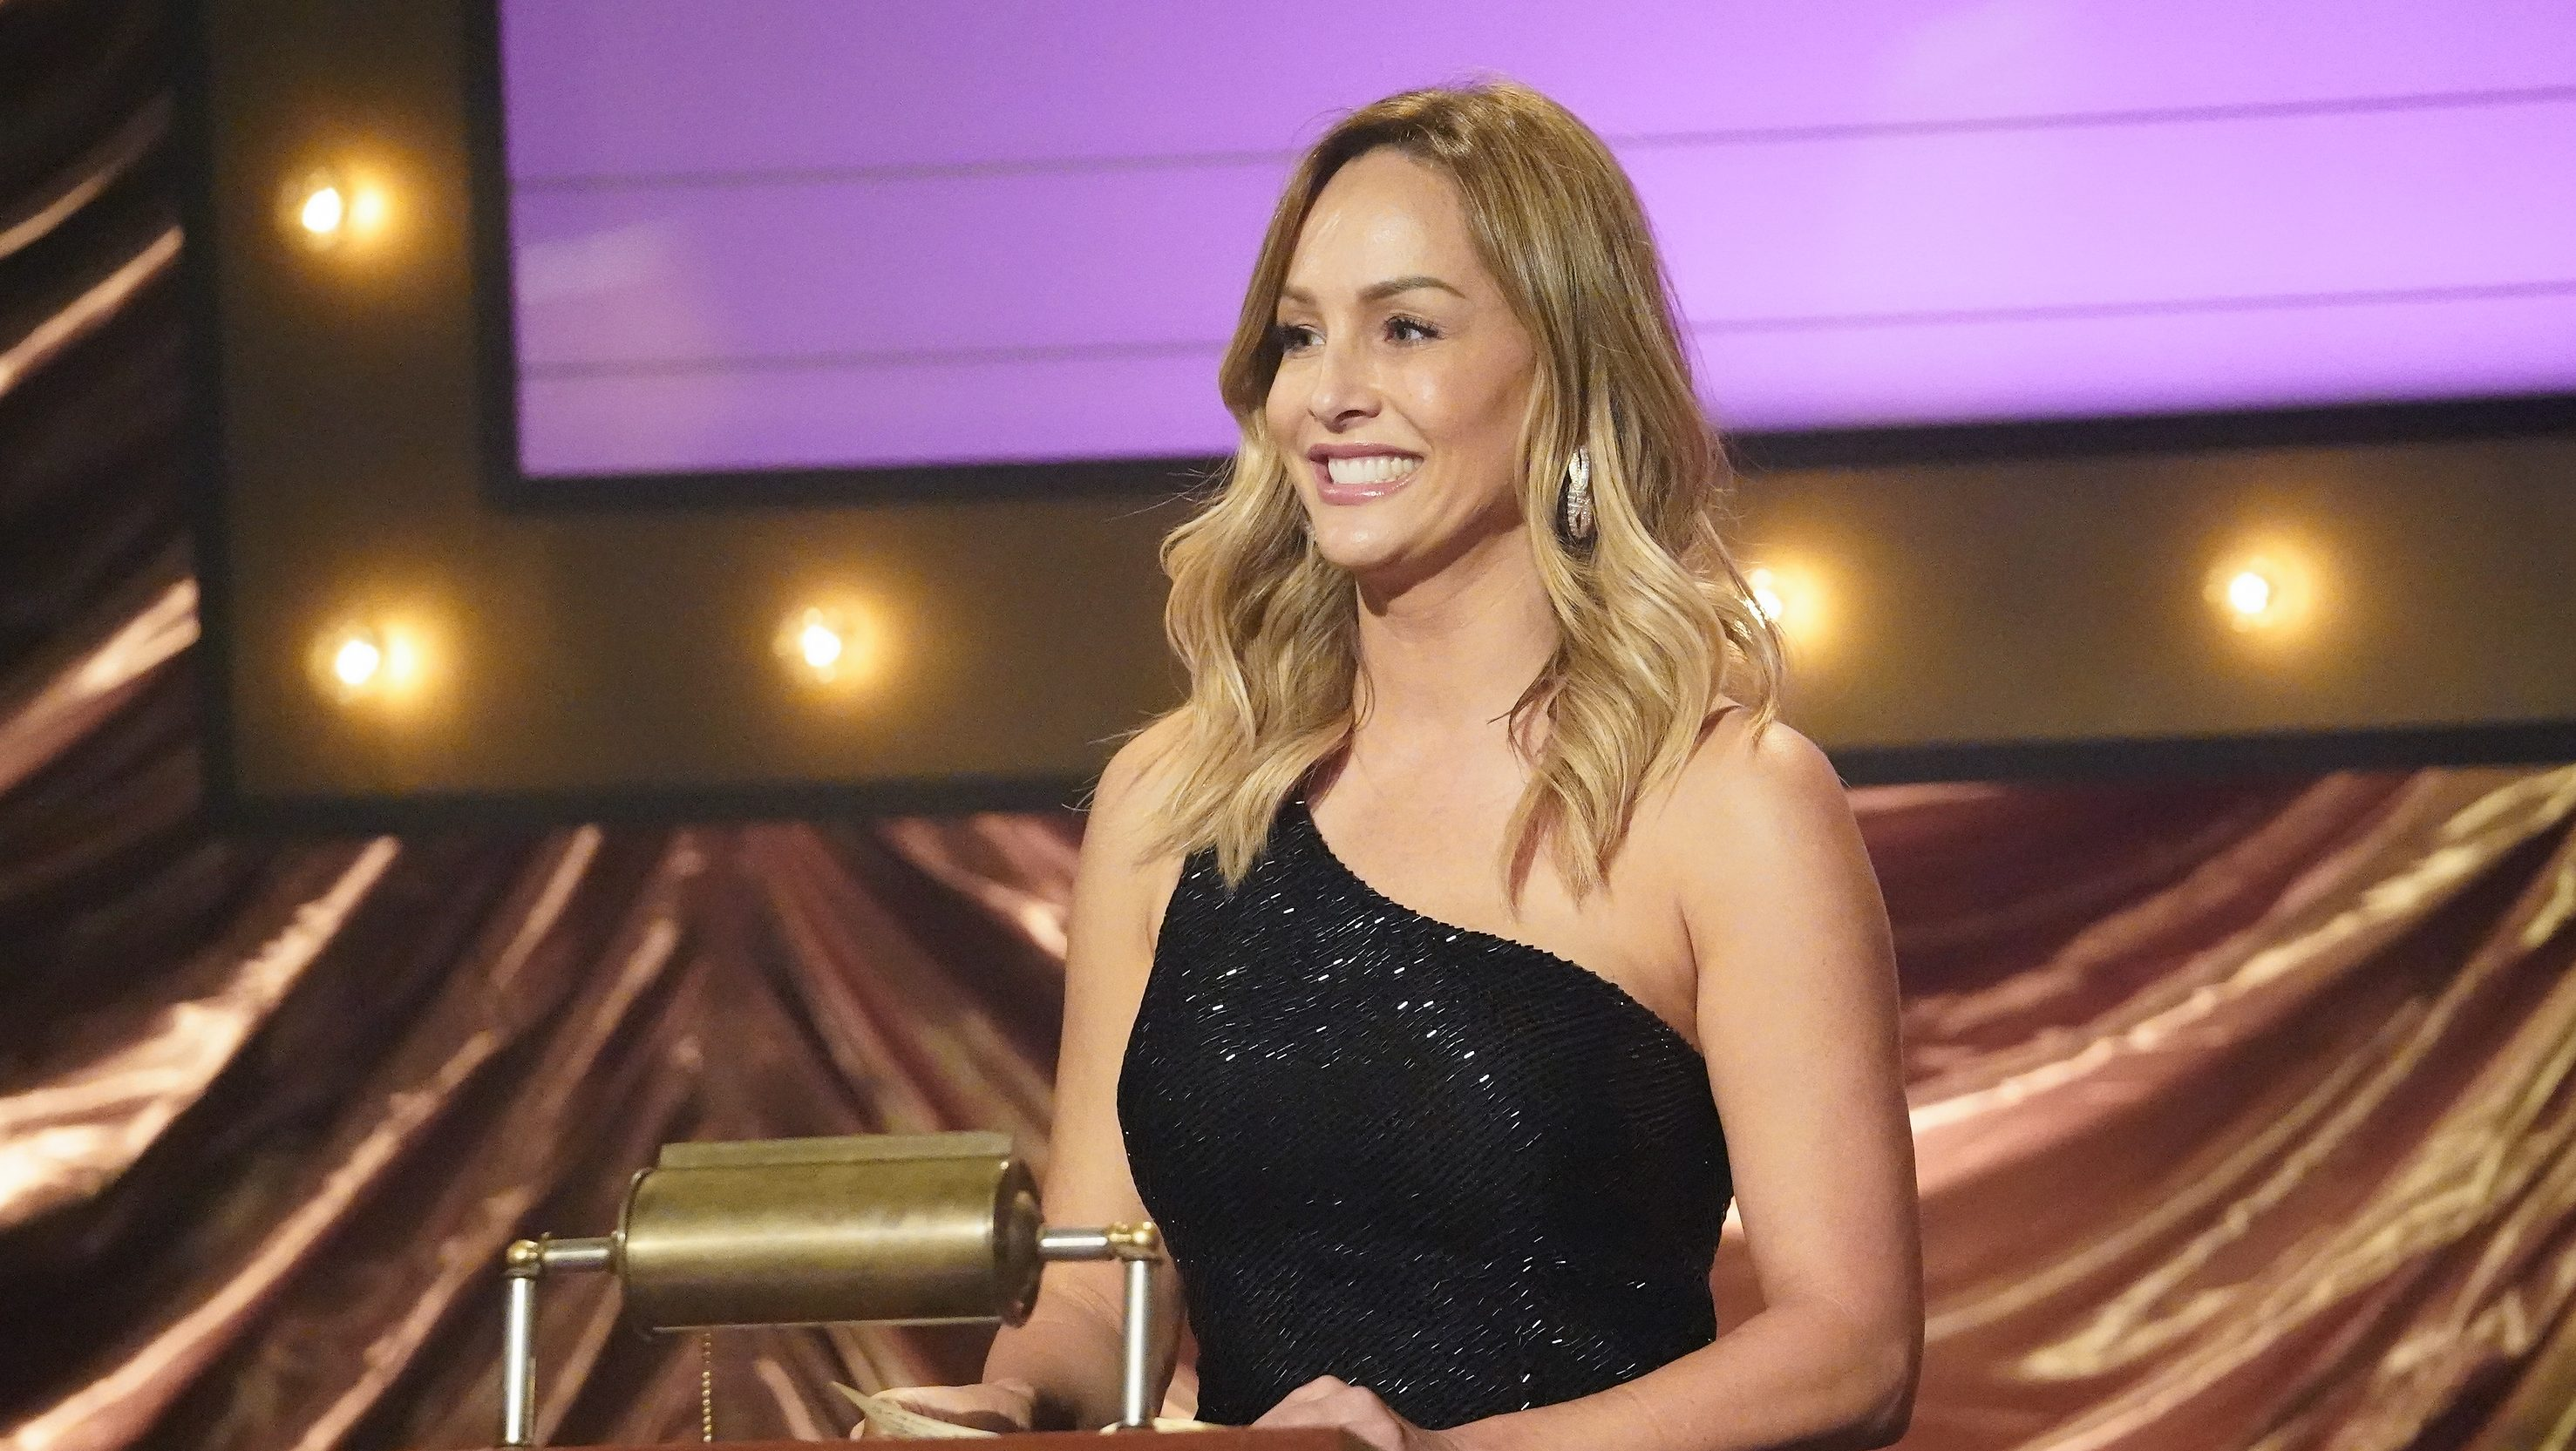 Clare Crawley Implies She Was 'Forced Out' of The Bachelorette